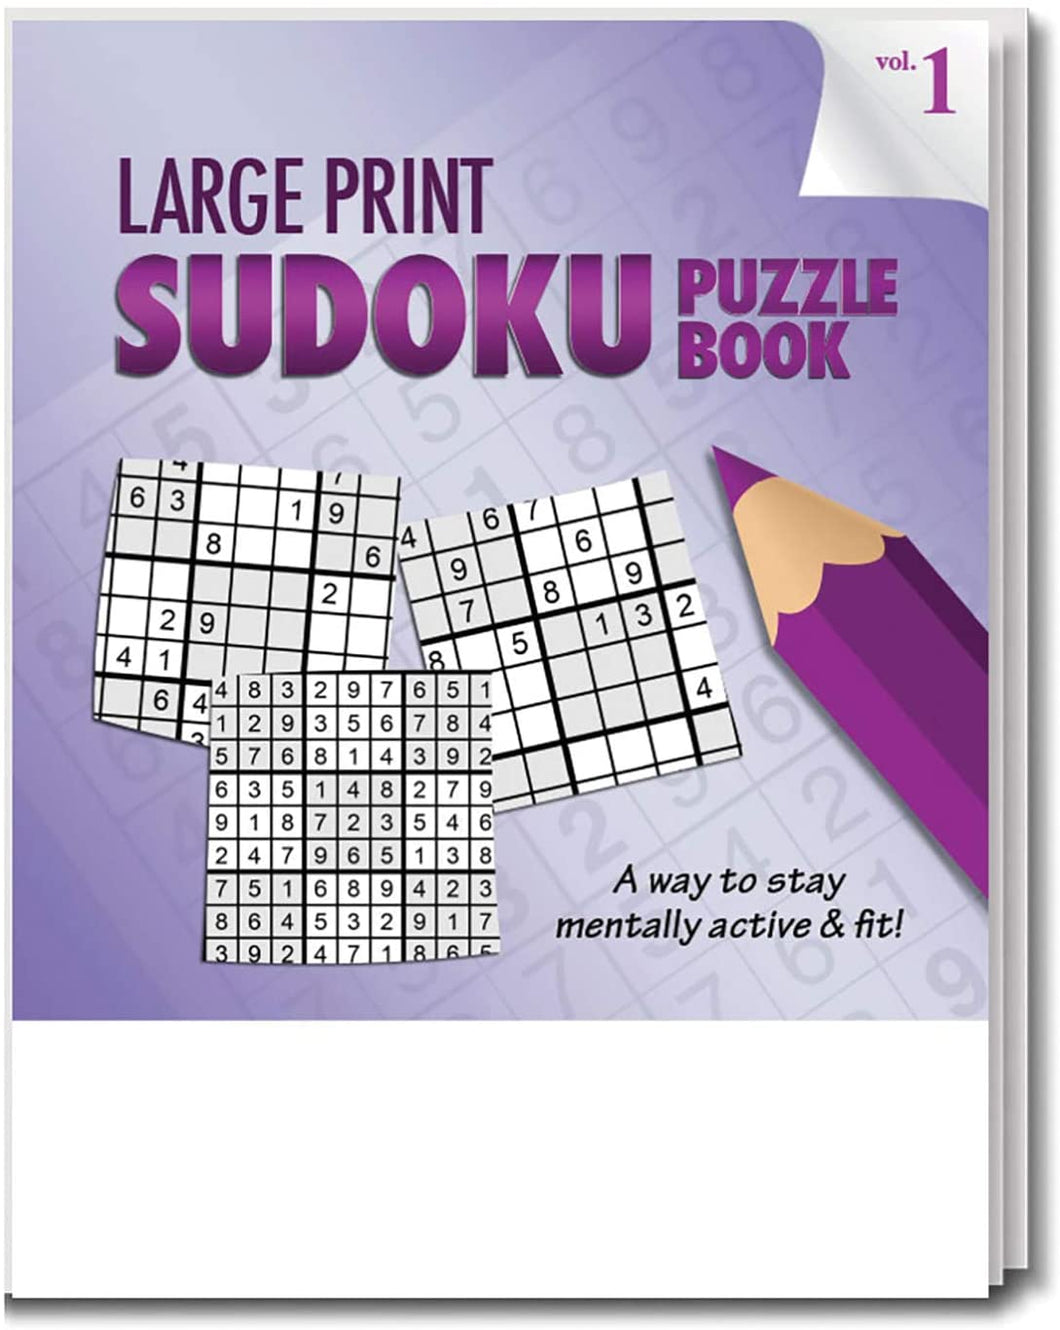 Safety Magnets Large Print Sudoku Puzzle Books for Seniors in Bulk (25 Pack) - Volume 1